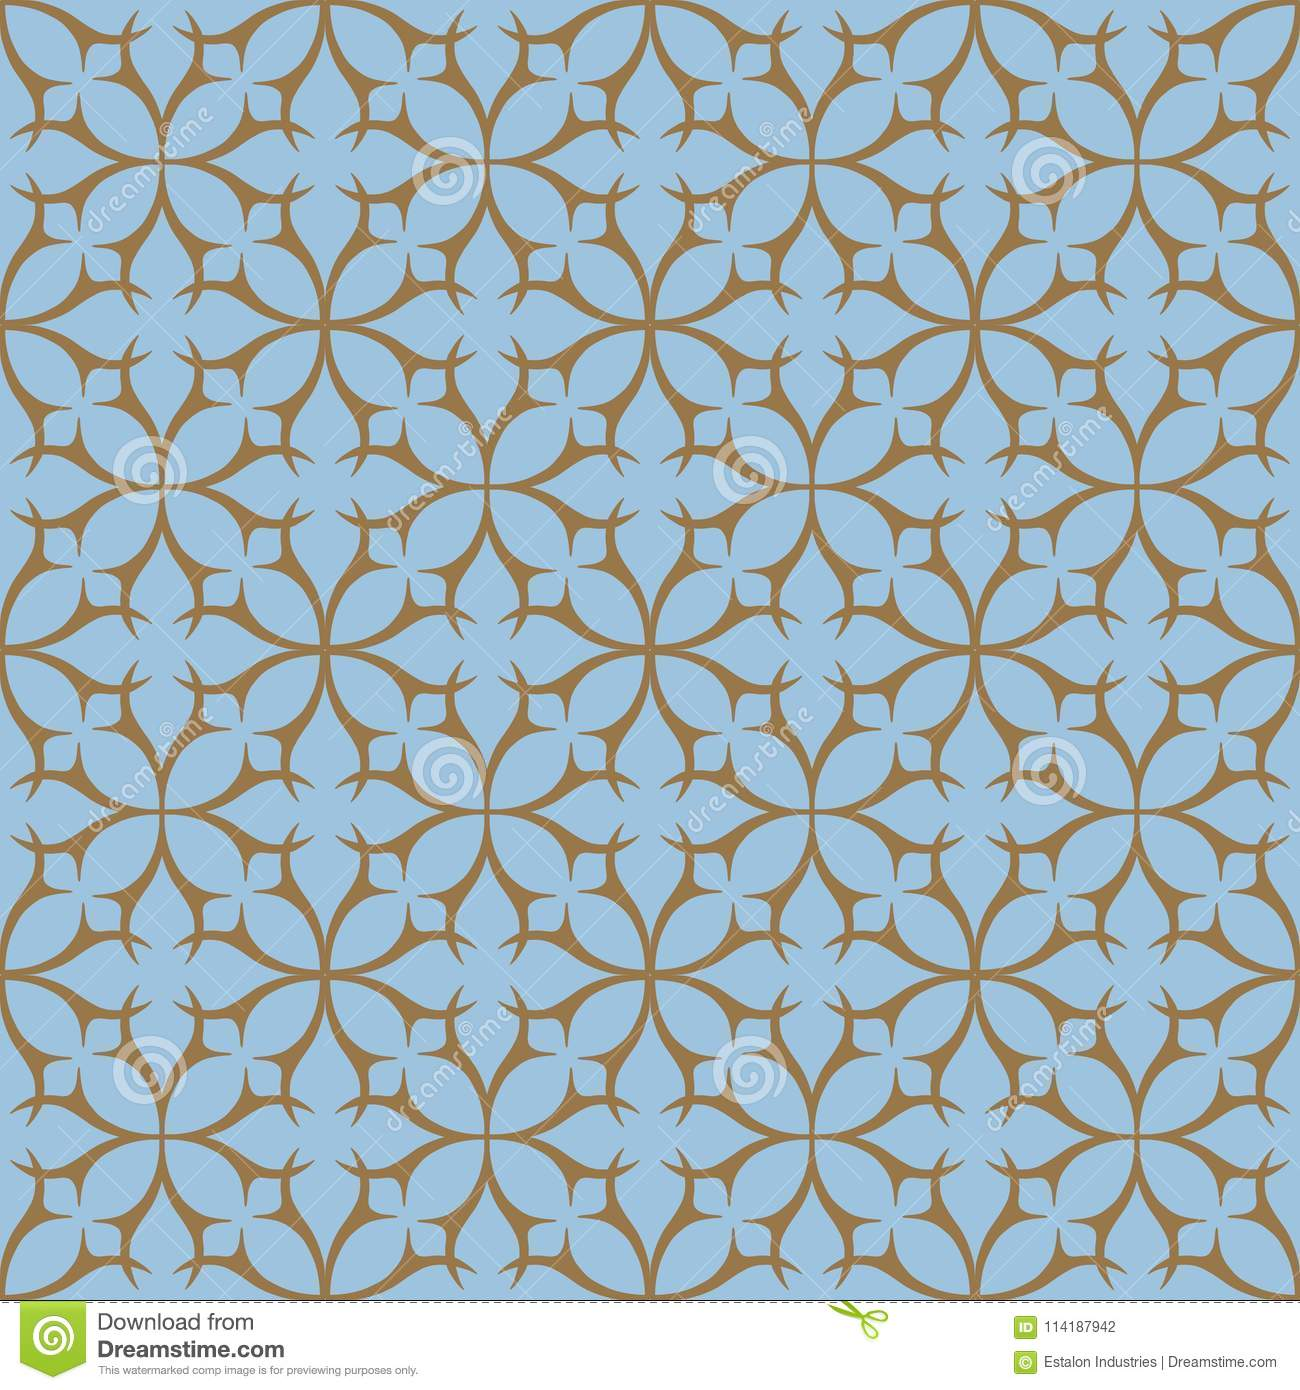 https www dreamstime com two colour geometric tile thorn circle seamless repeat pattern background could be used brown light blue image114187942